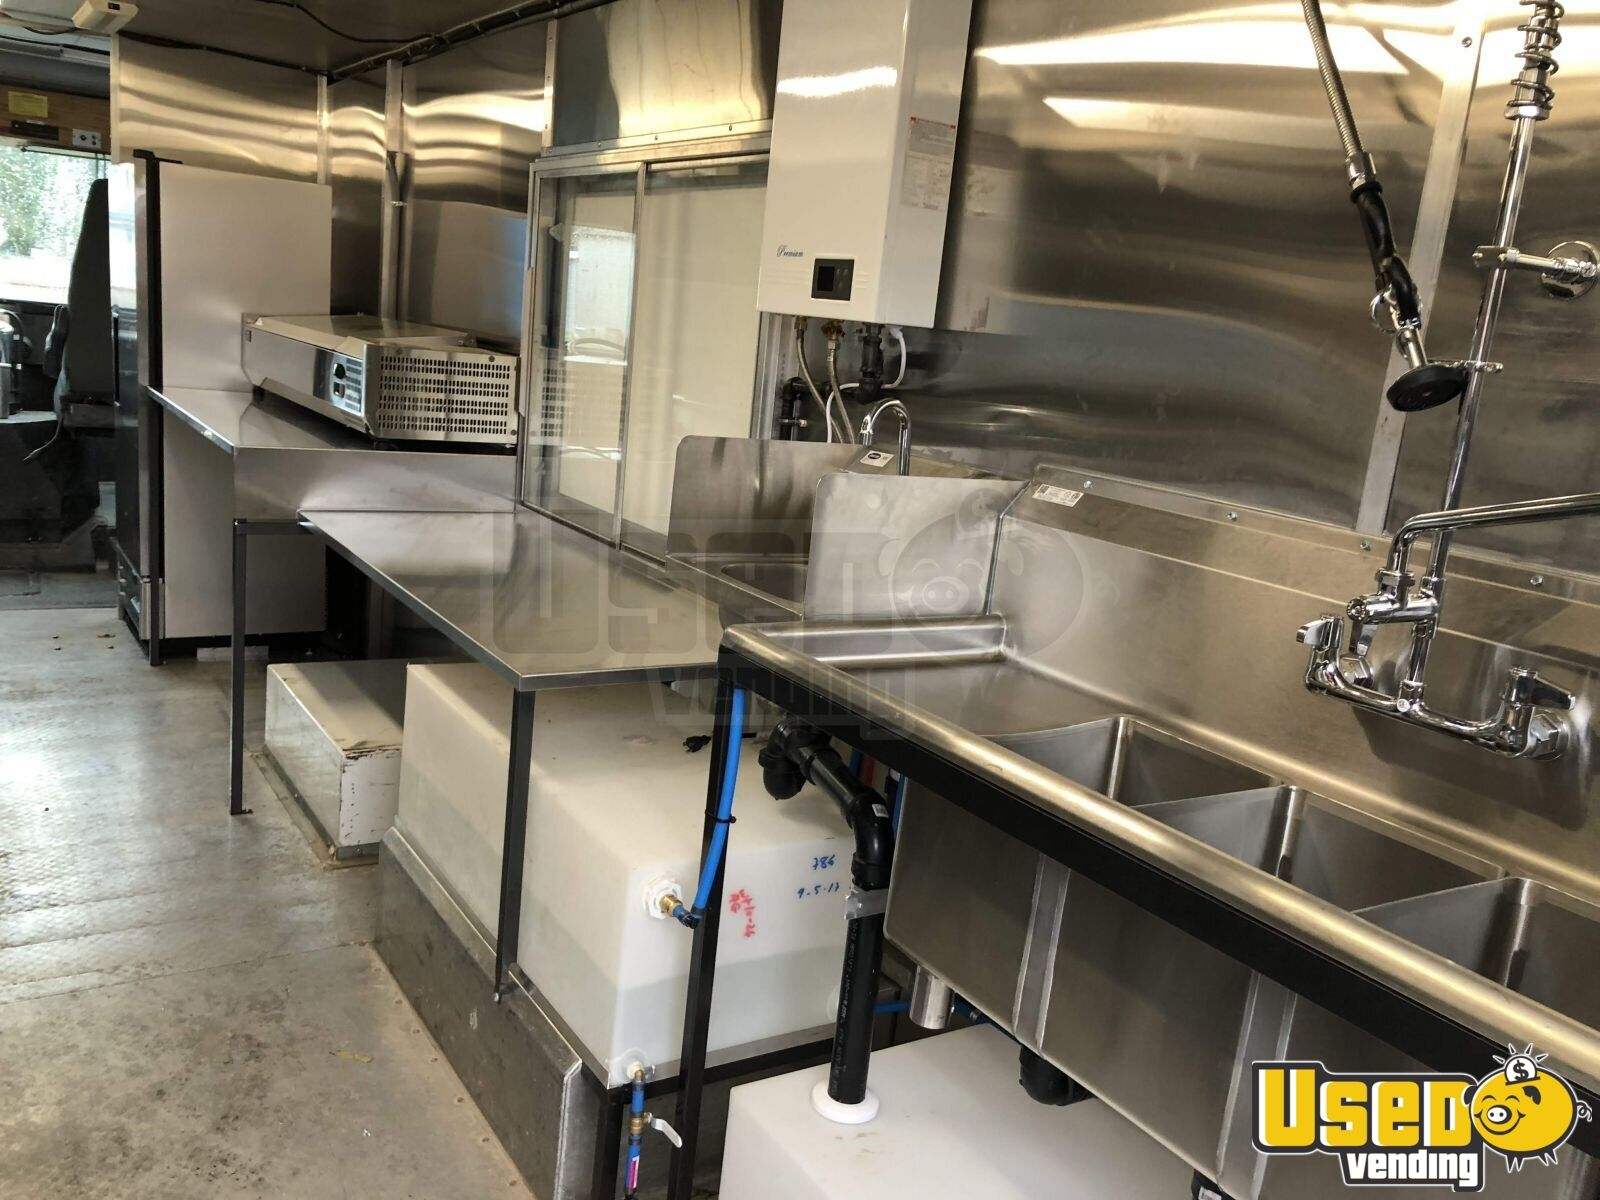 1996 Gmc All-purpose Food Truck Cabinets Washington for Sale - 3